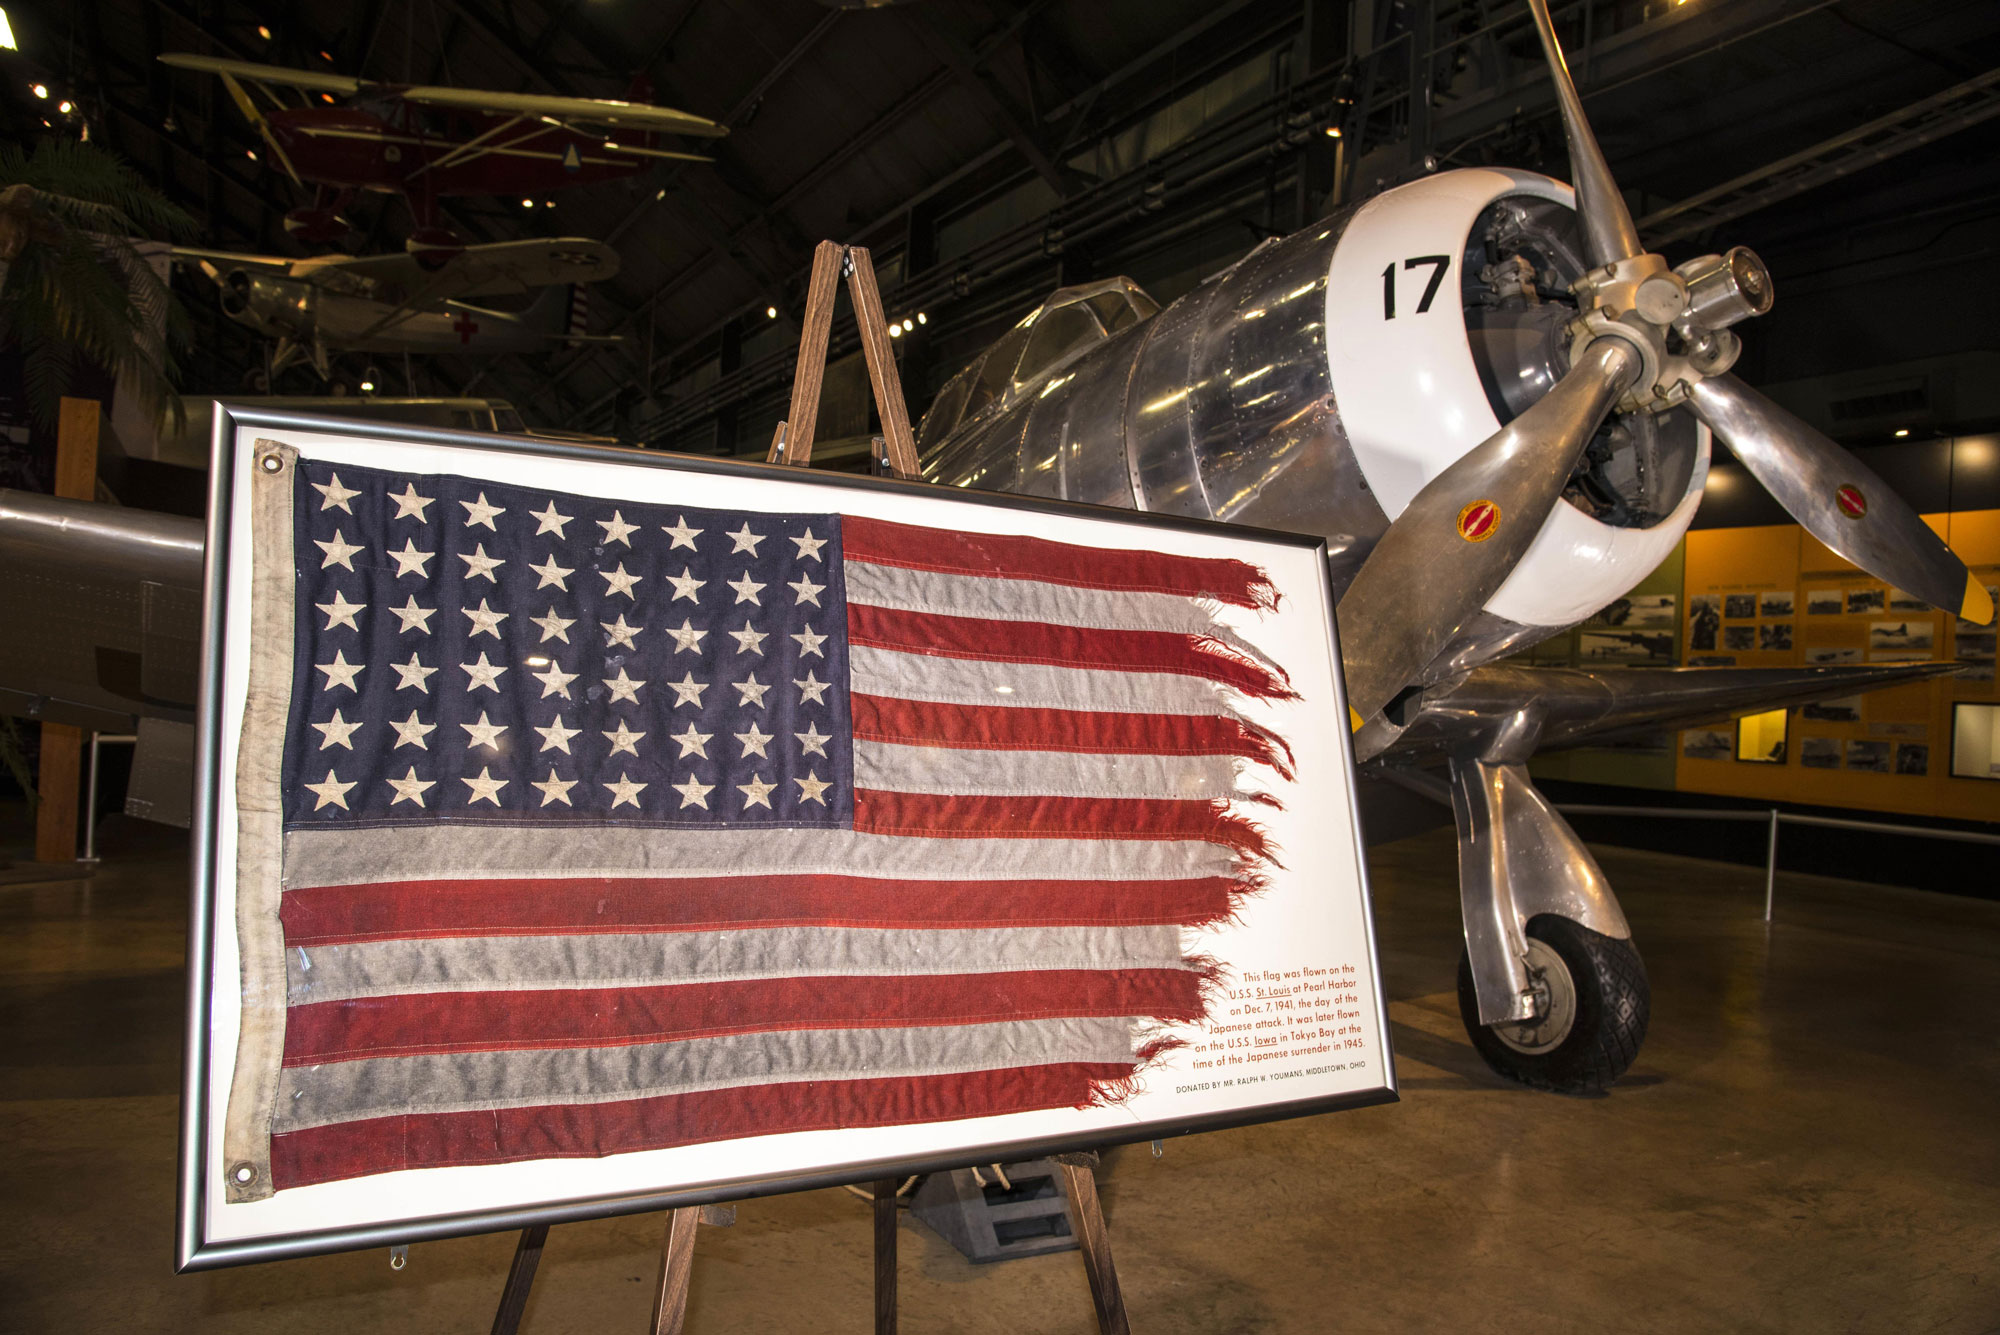 A framed American flag sits on display inside the National Museum of the U.S. Air Force in Dayton, Ohio, December 7, 2016. The flag was flown on the USS St. Louis at Pearl Harbor the day of the attacks nearly 77 years ago. It was later flown on the USS Iowa at the time of the Japanese surrender in 1945.